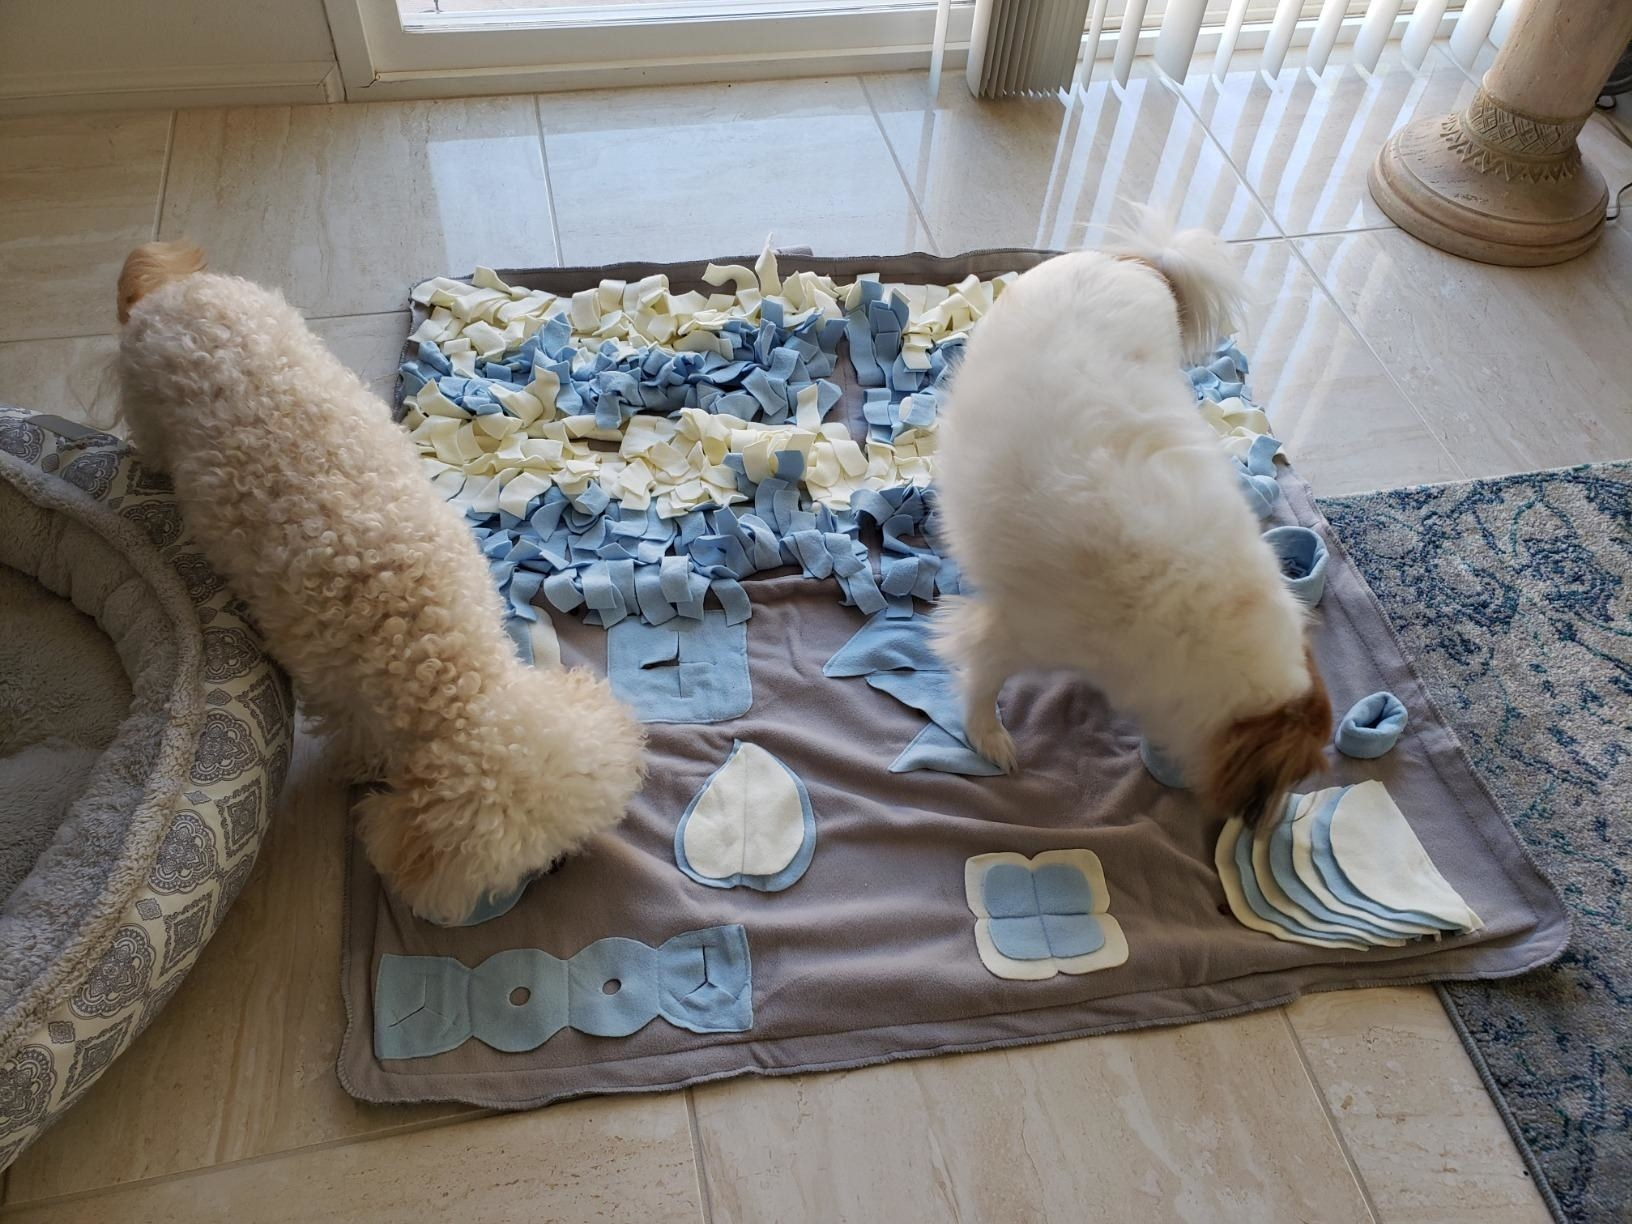 Two dogs interacting with the mat, which has felt sections